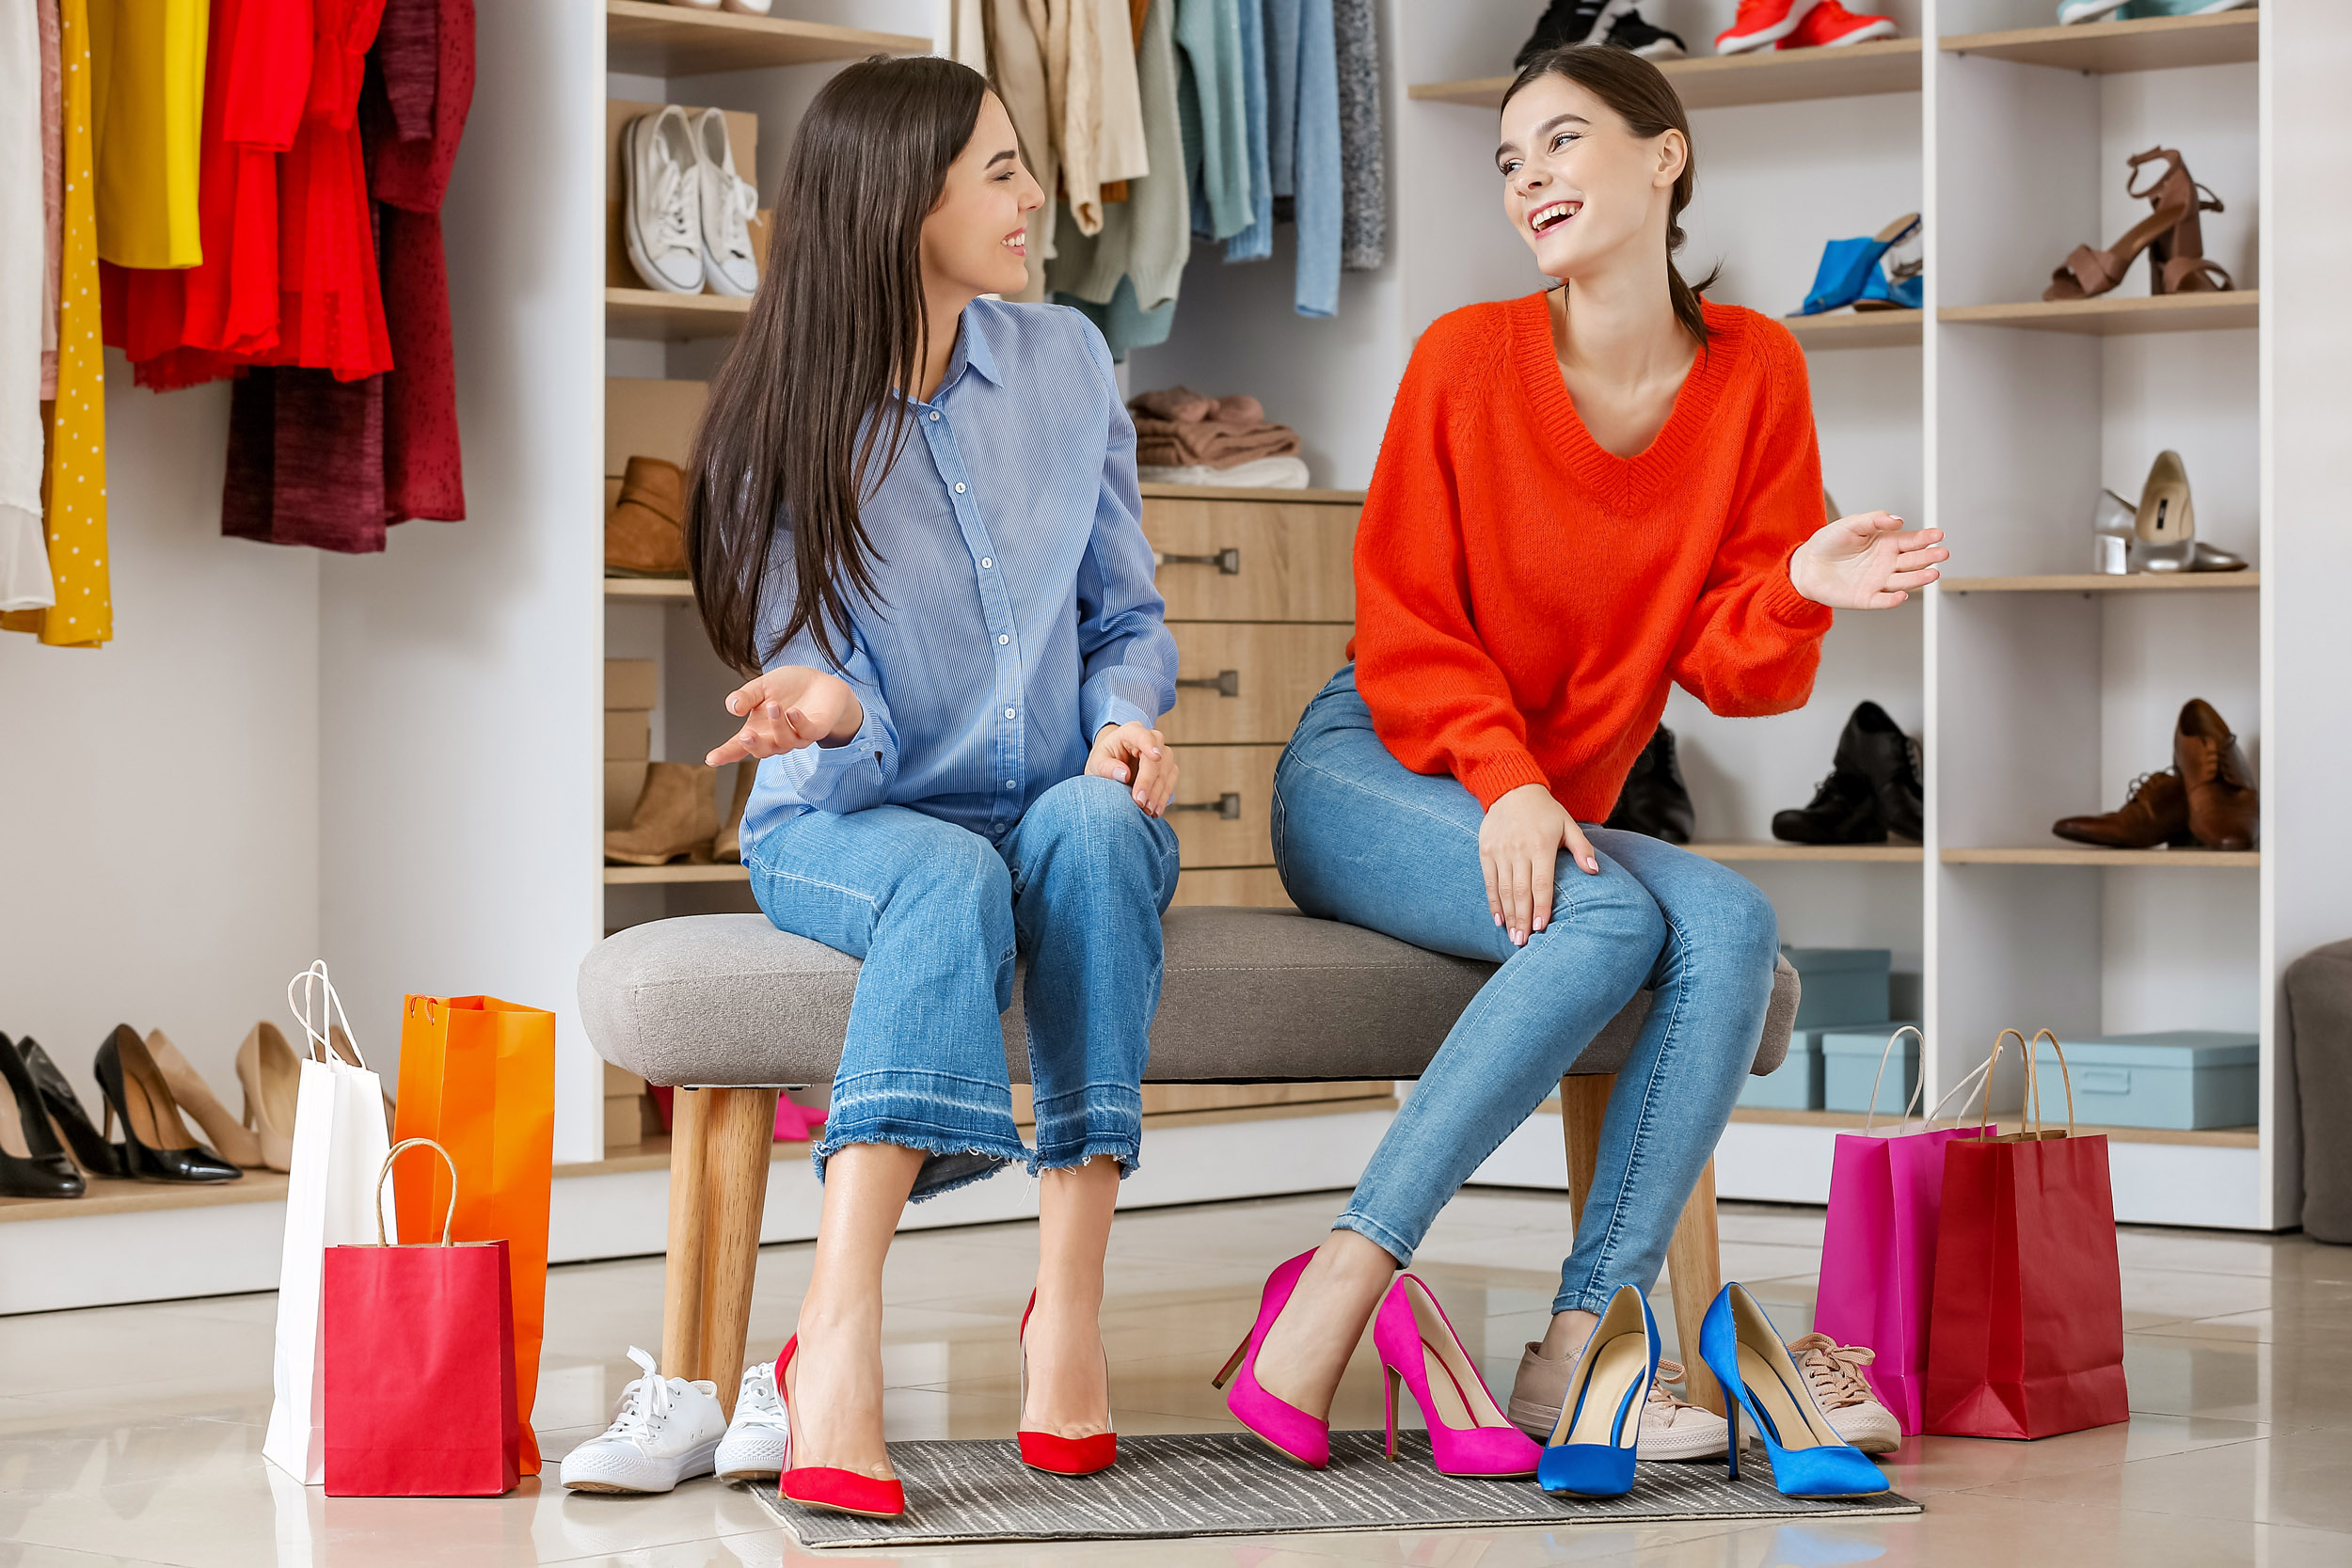 Young women choosing shoes in modern store